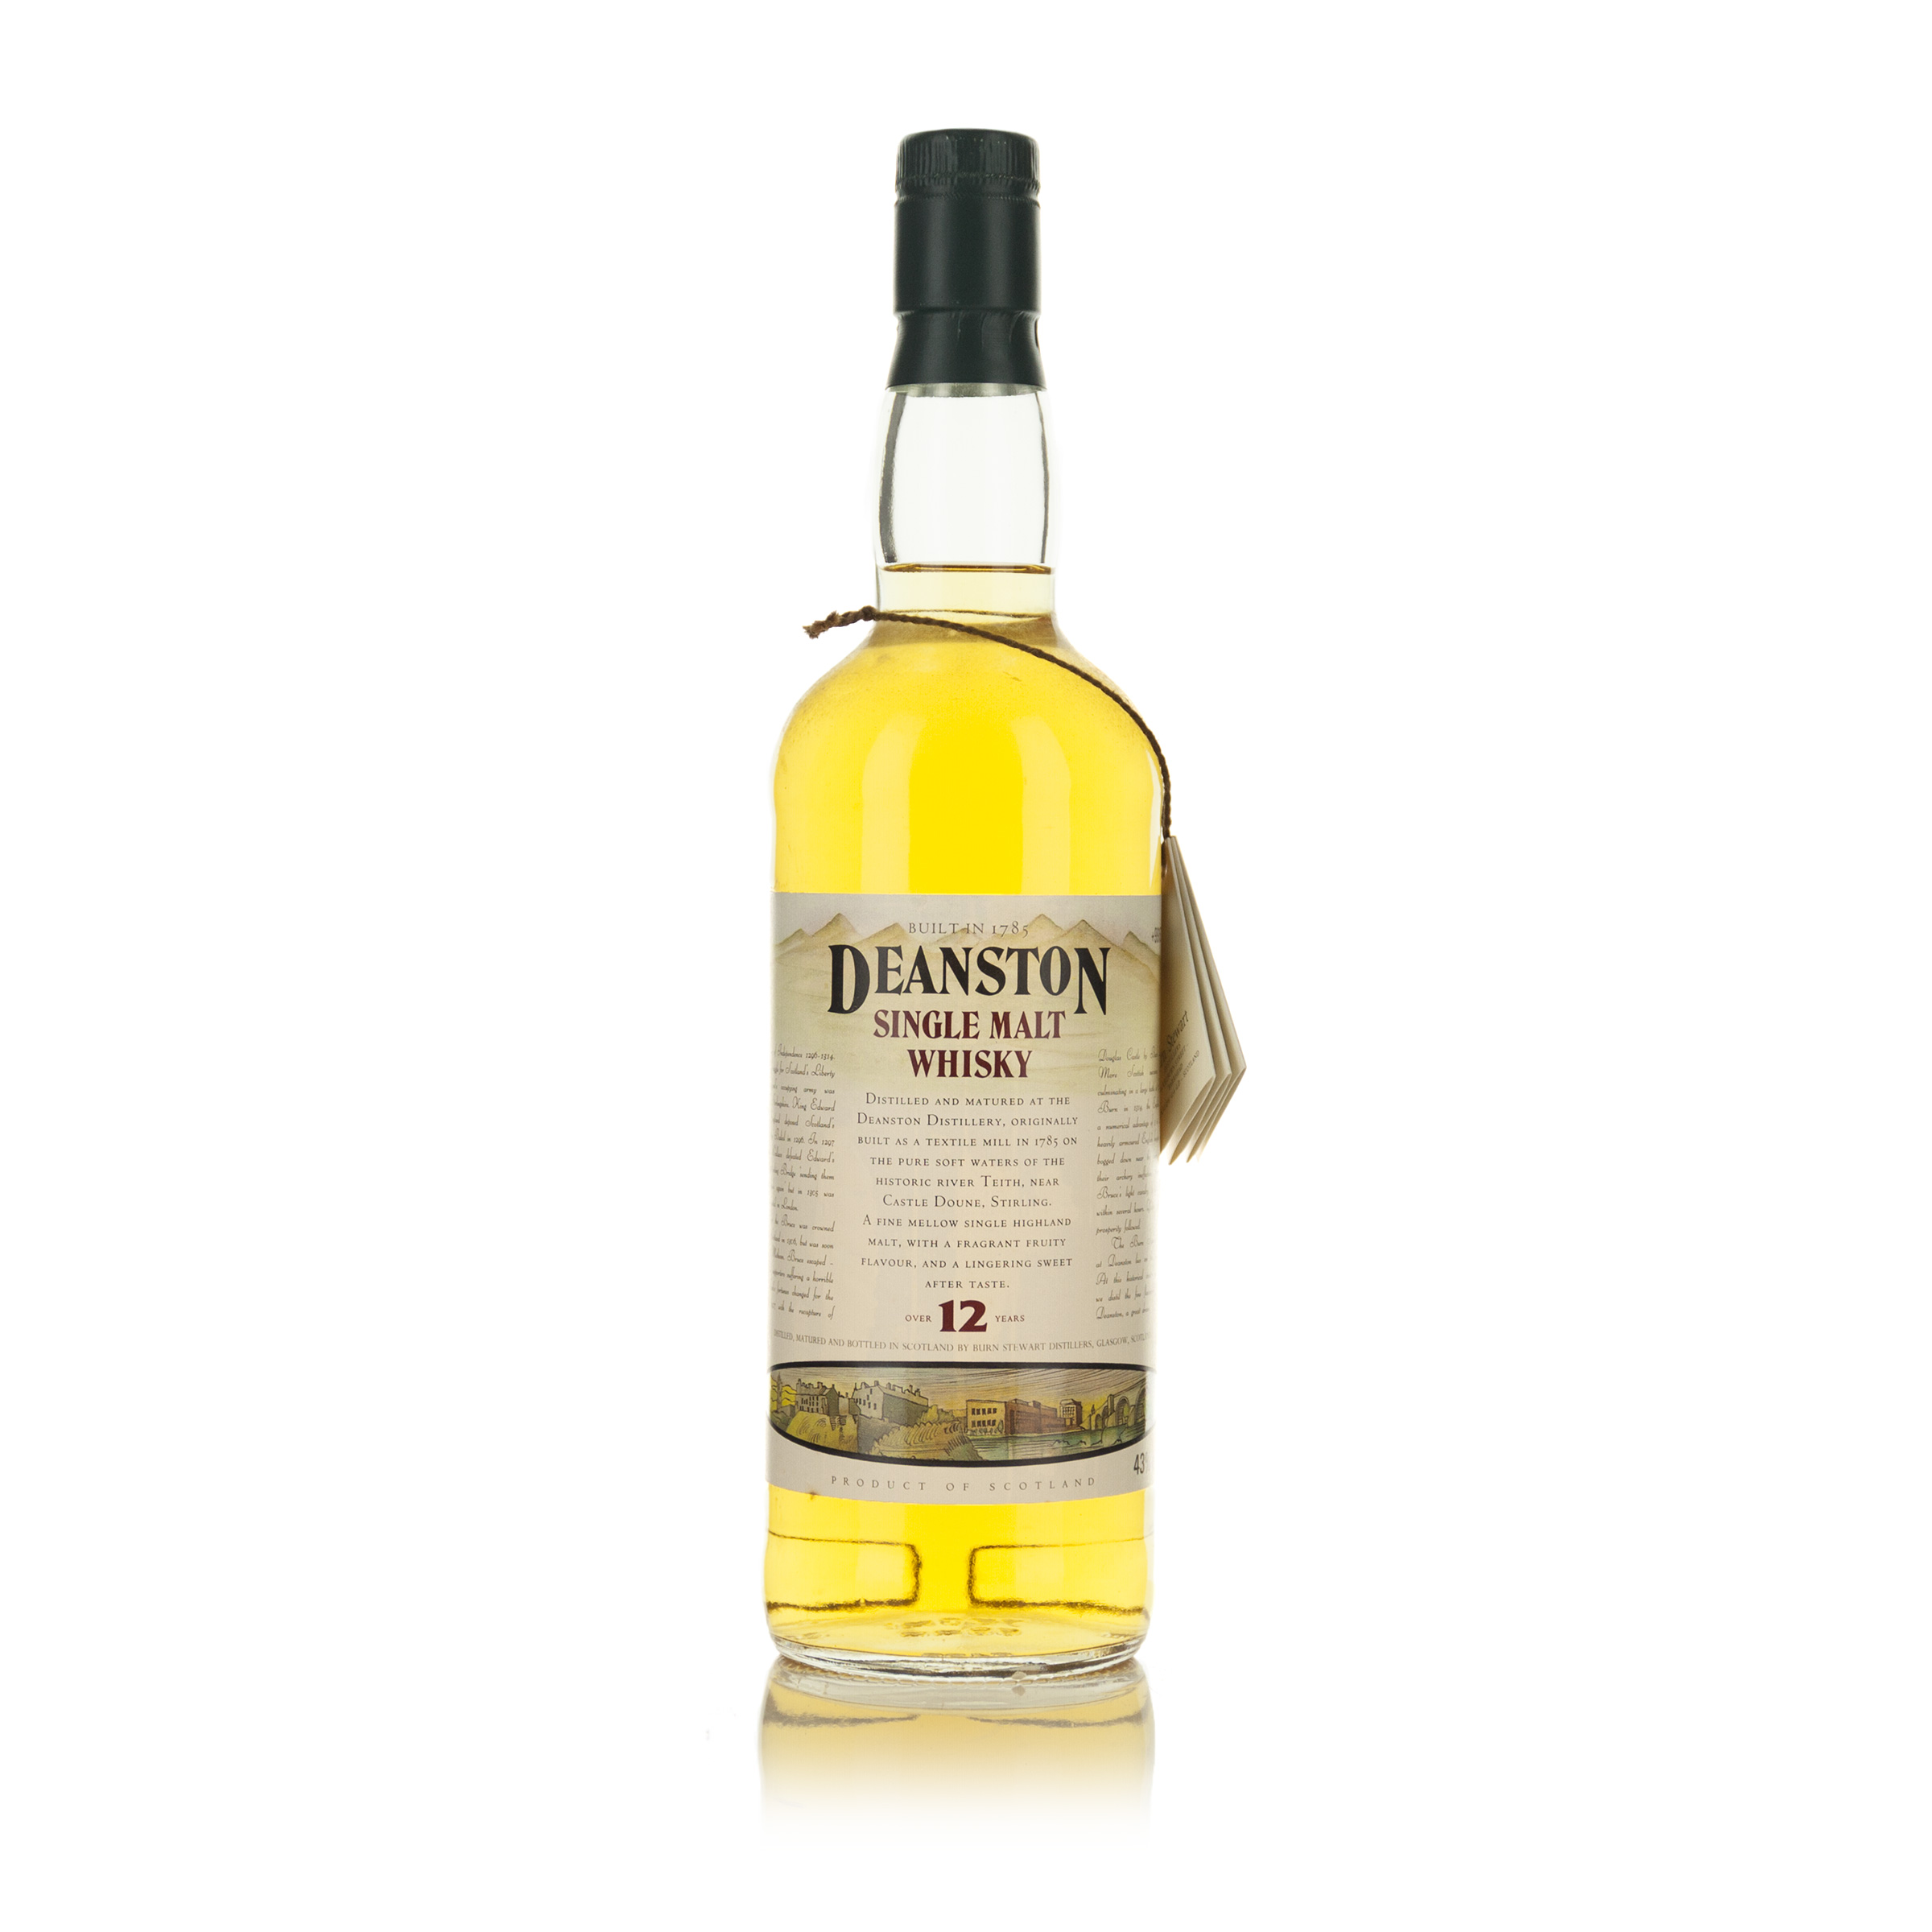 DEANSTON SINGLE MALT SCOTCH WHISKY 12 YEARS (ONE 750 ML)